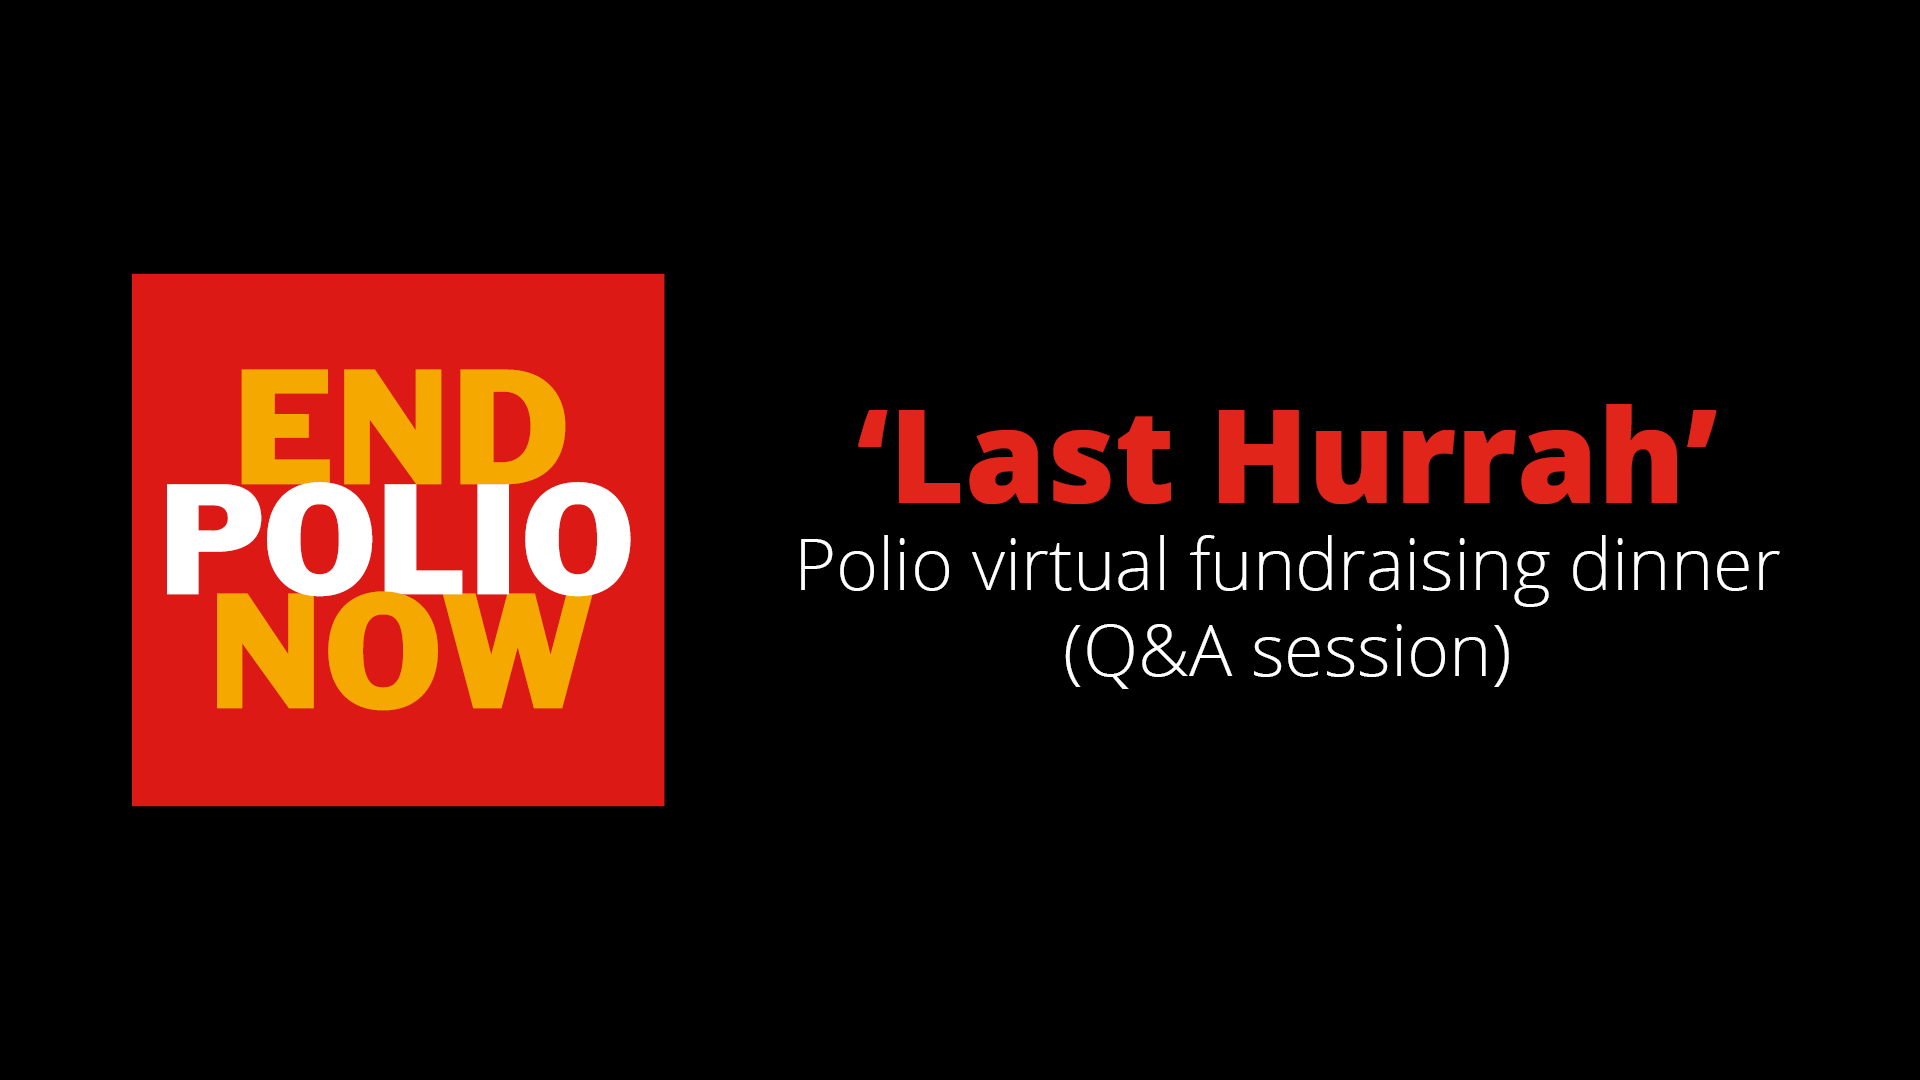 Part 02 (Q&A session) of the 'Last Hurrah' Polio virtual fundraising dinner